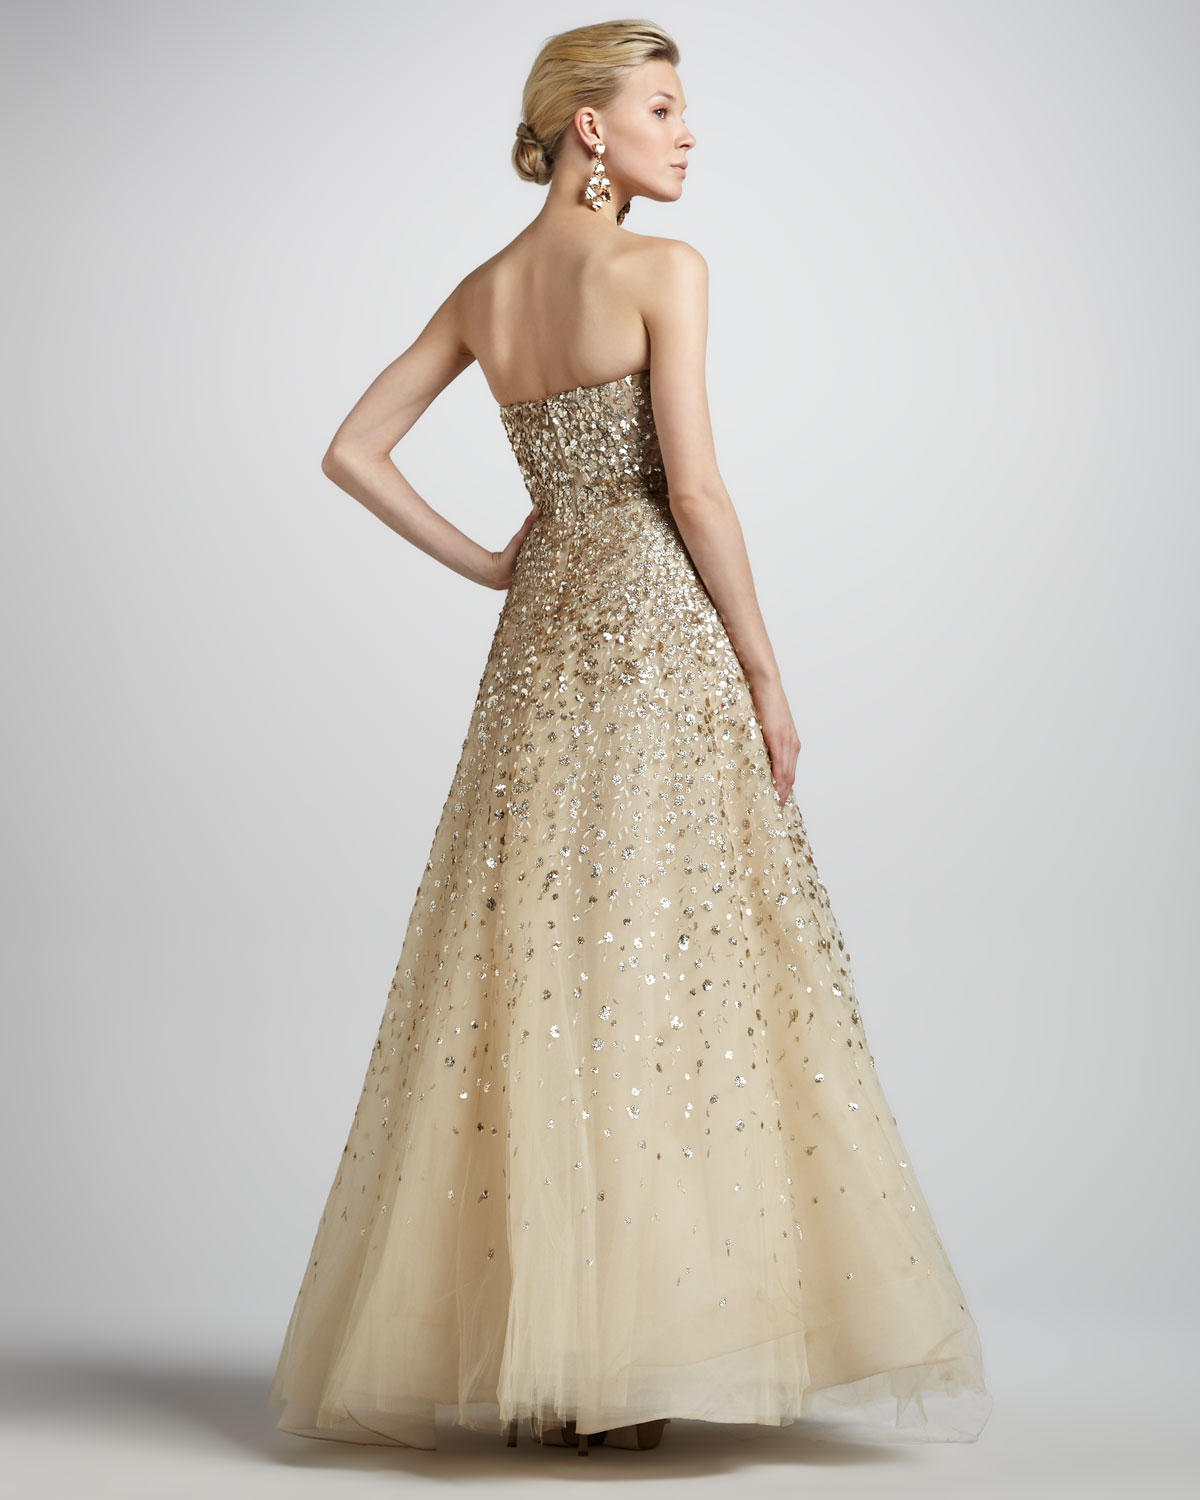 lyst oscar de la renta strapless floral paillette ball gown champagne in metallic. Black Bedroom Furniture Sets. Home Design Ideas